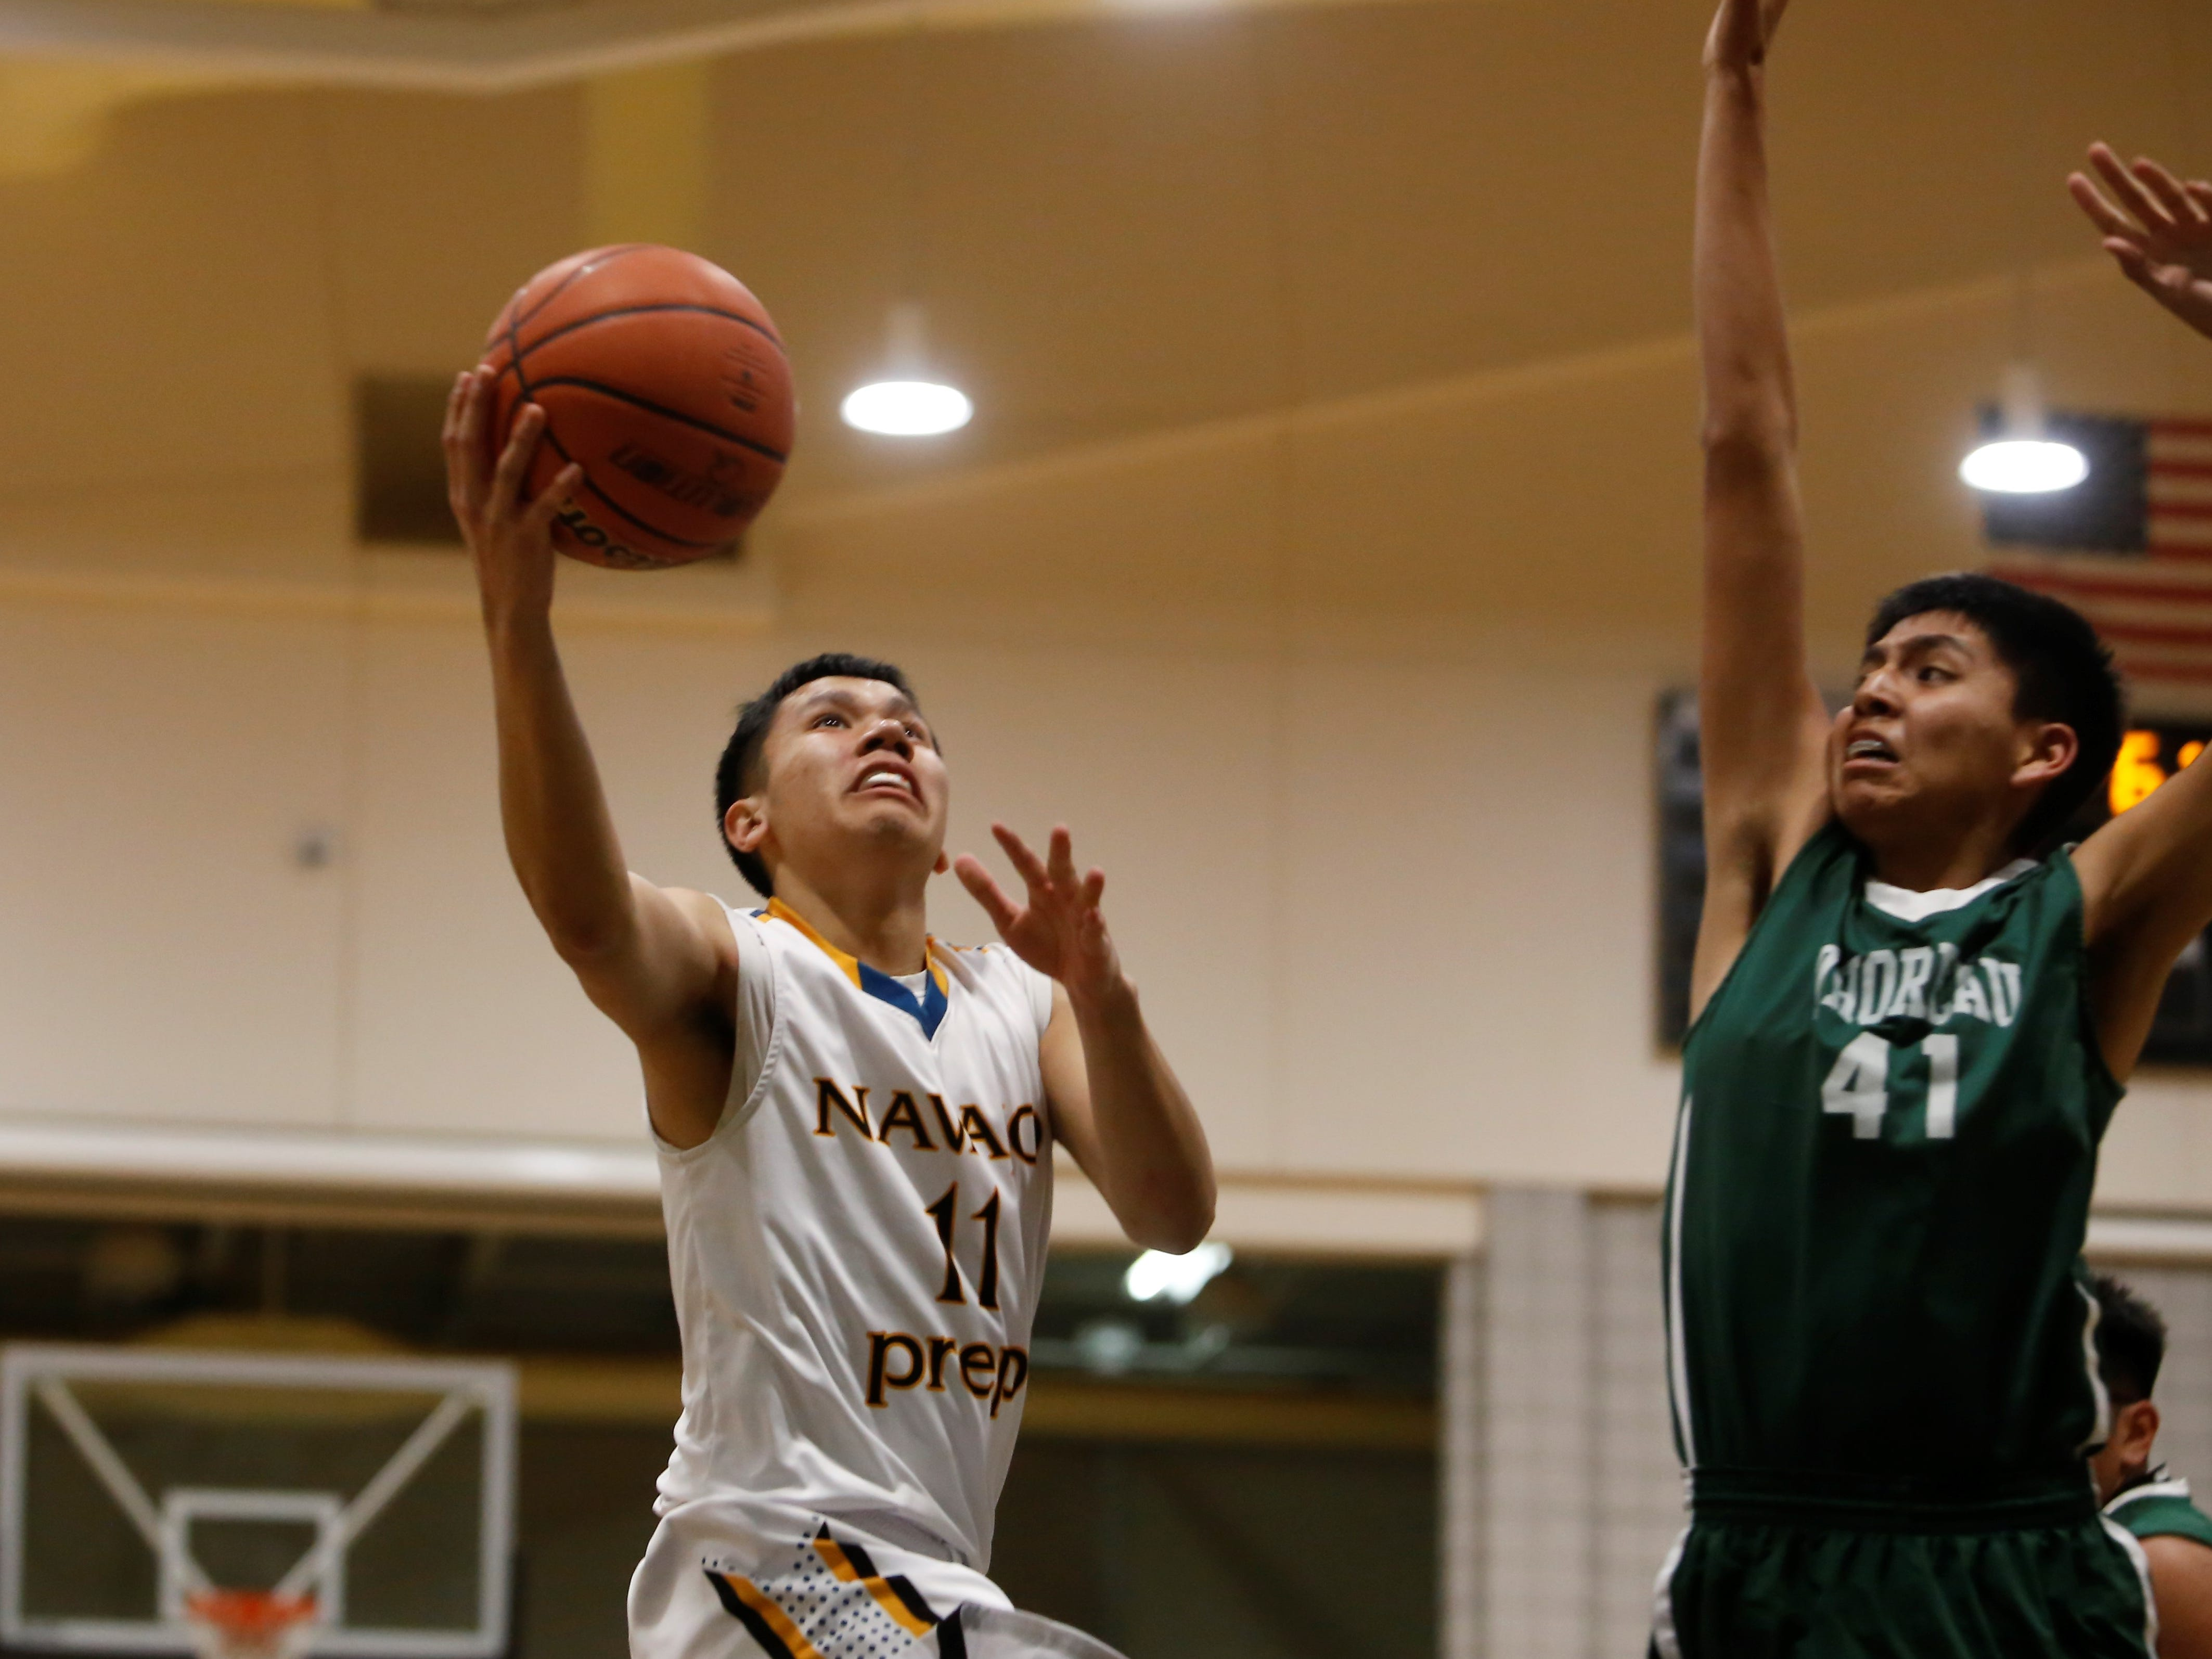 Navajo Prep's Thomas Montanez drives to the basket for a layup against Thoreau during Wednesday's District 1-3A game at the Eagles Nest in Farmington.